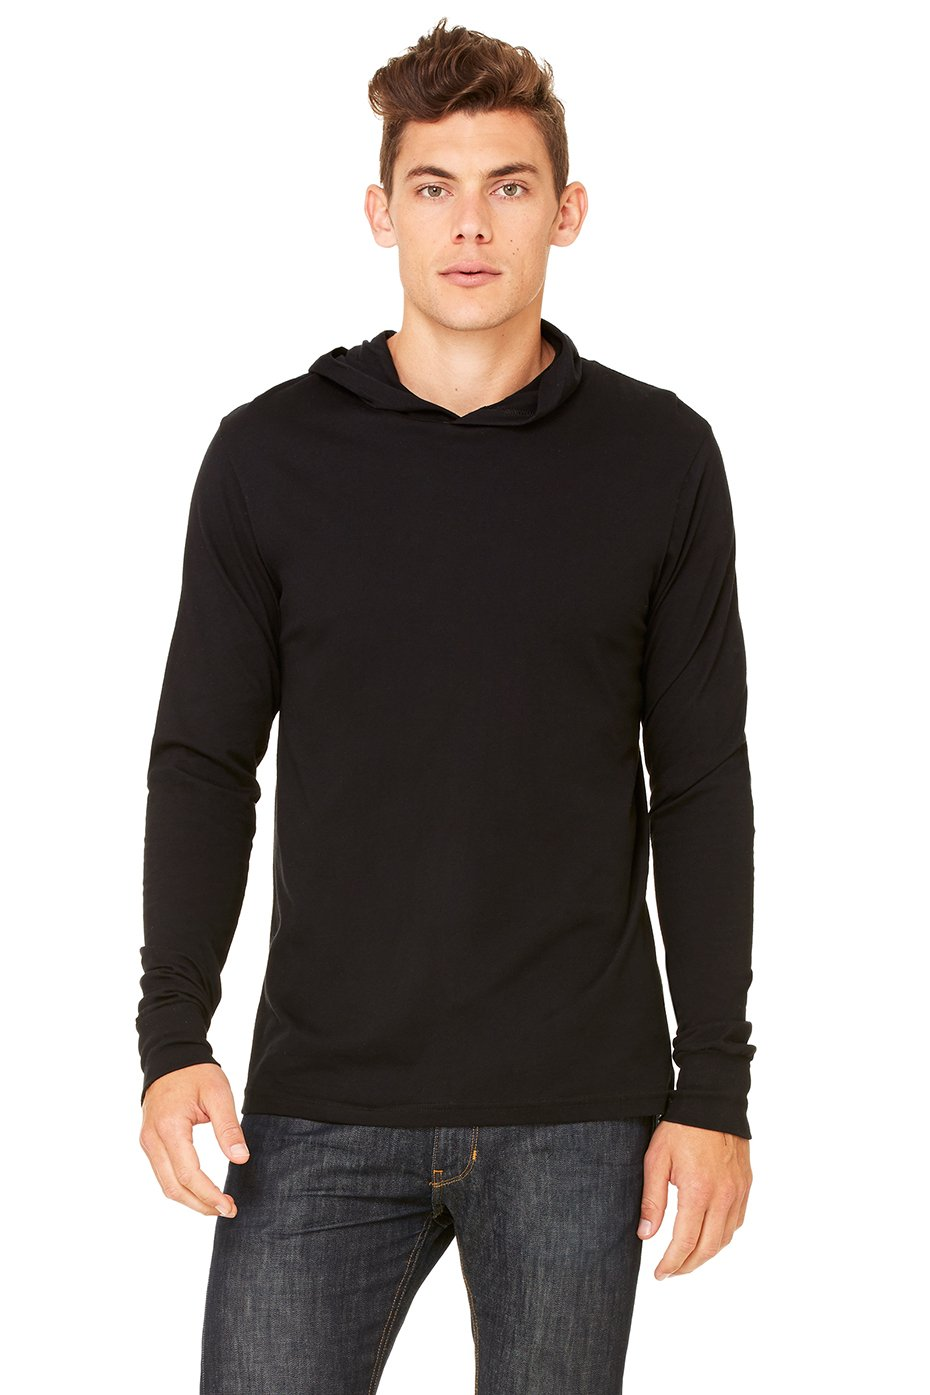 Bella + Canvas - 3551 - Men's Thermal Long-Sleeve Henley Hoodie